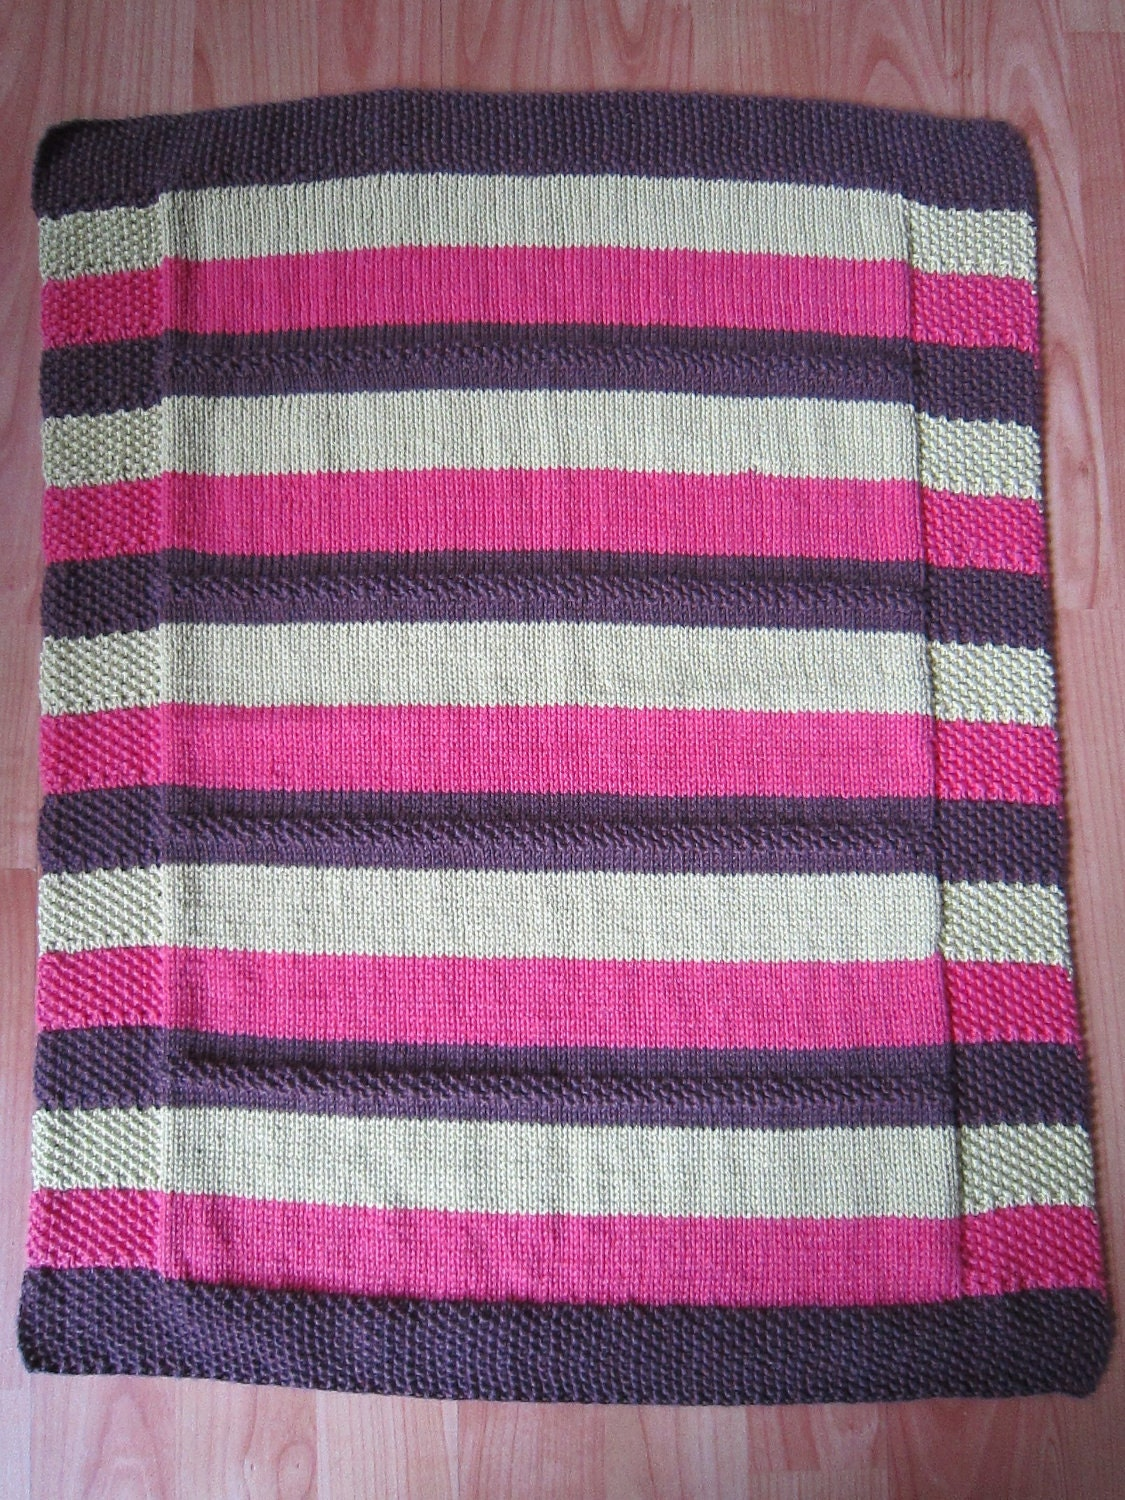 Hand Knitted Striped Wool and Cotton Baby Blanket by scottishcraft